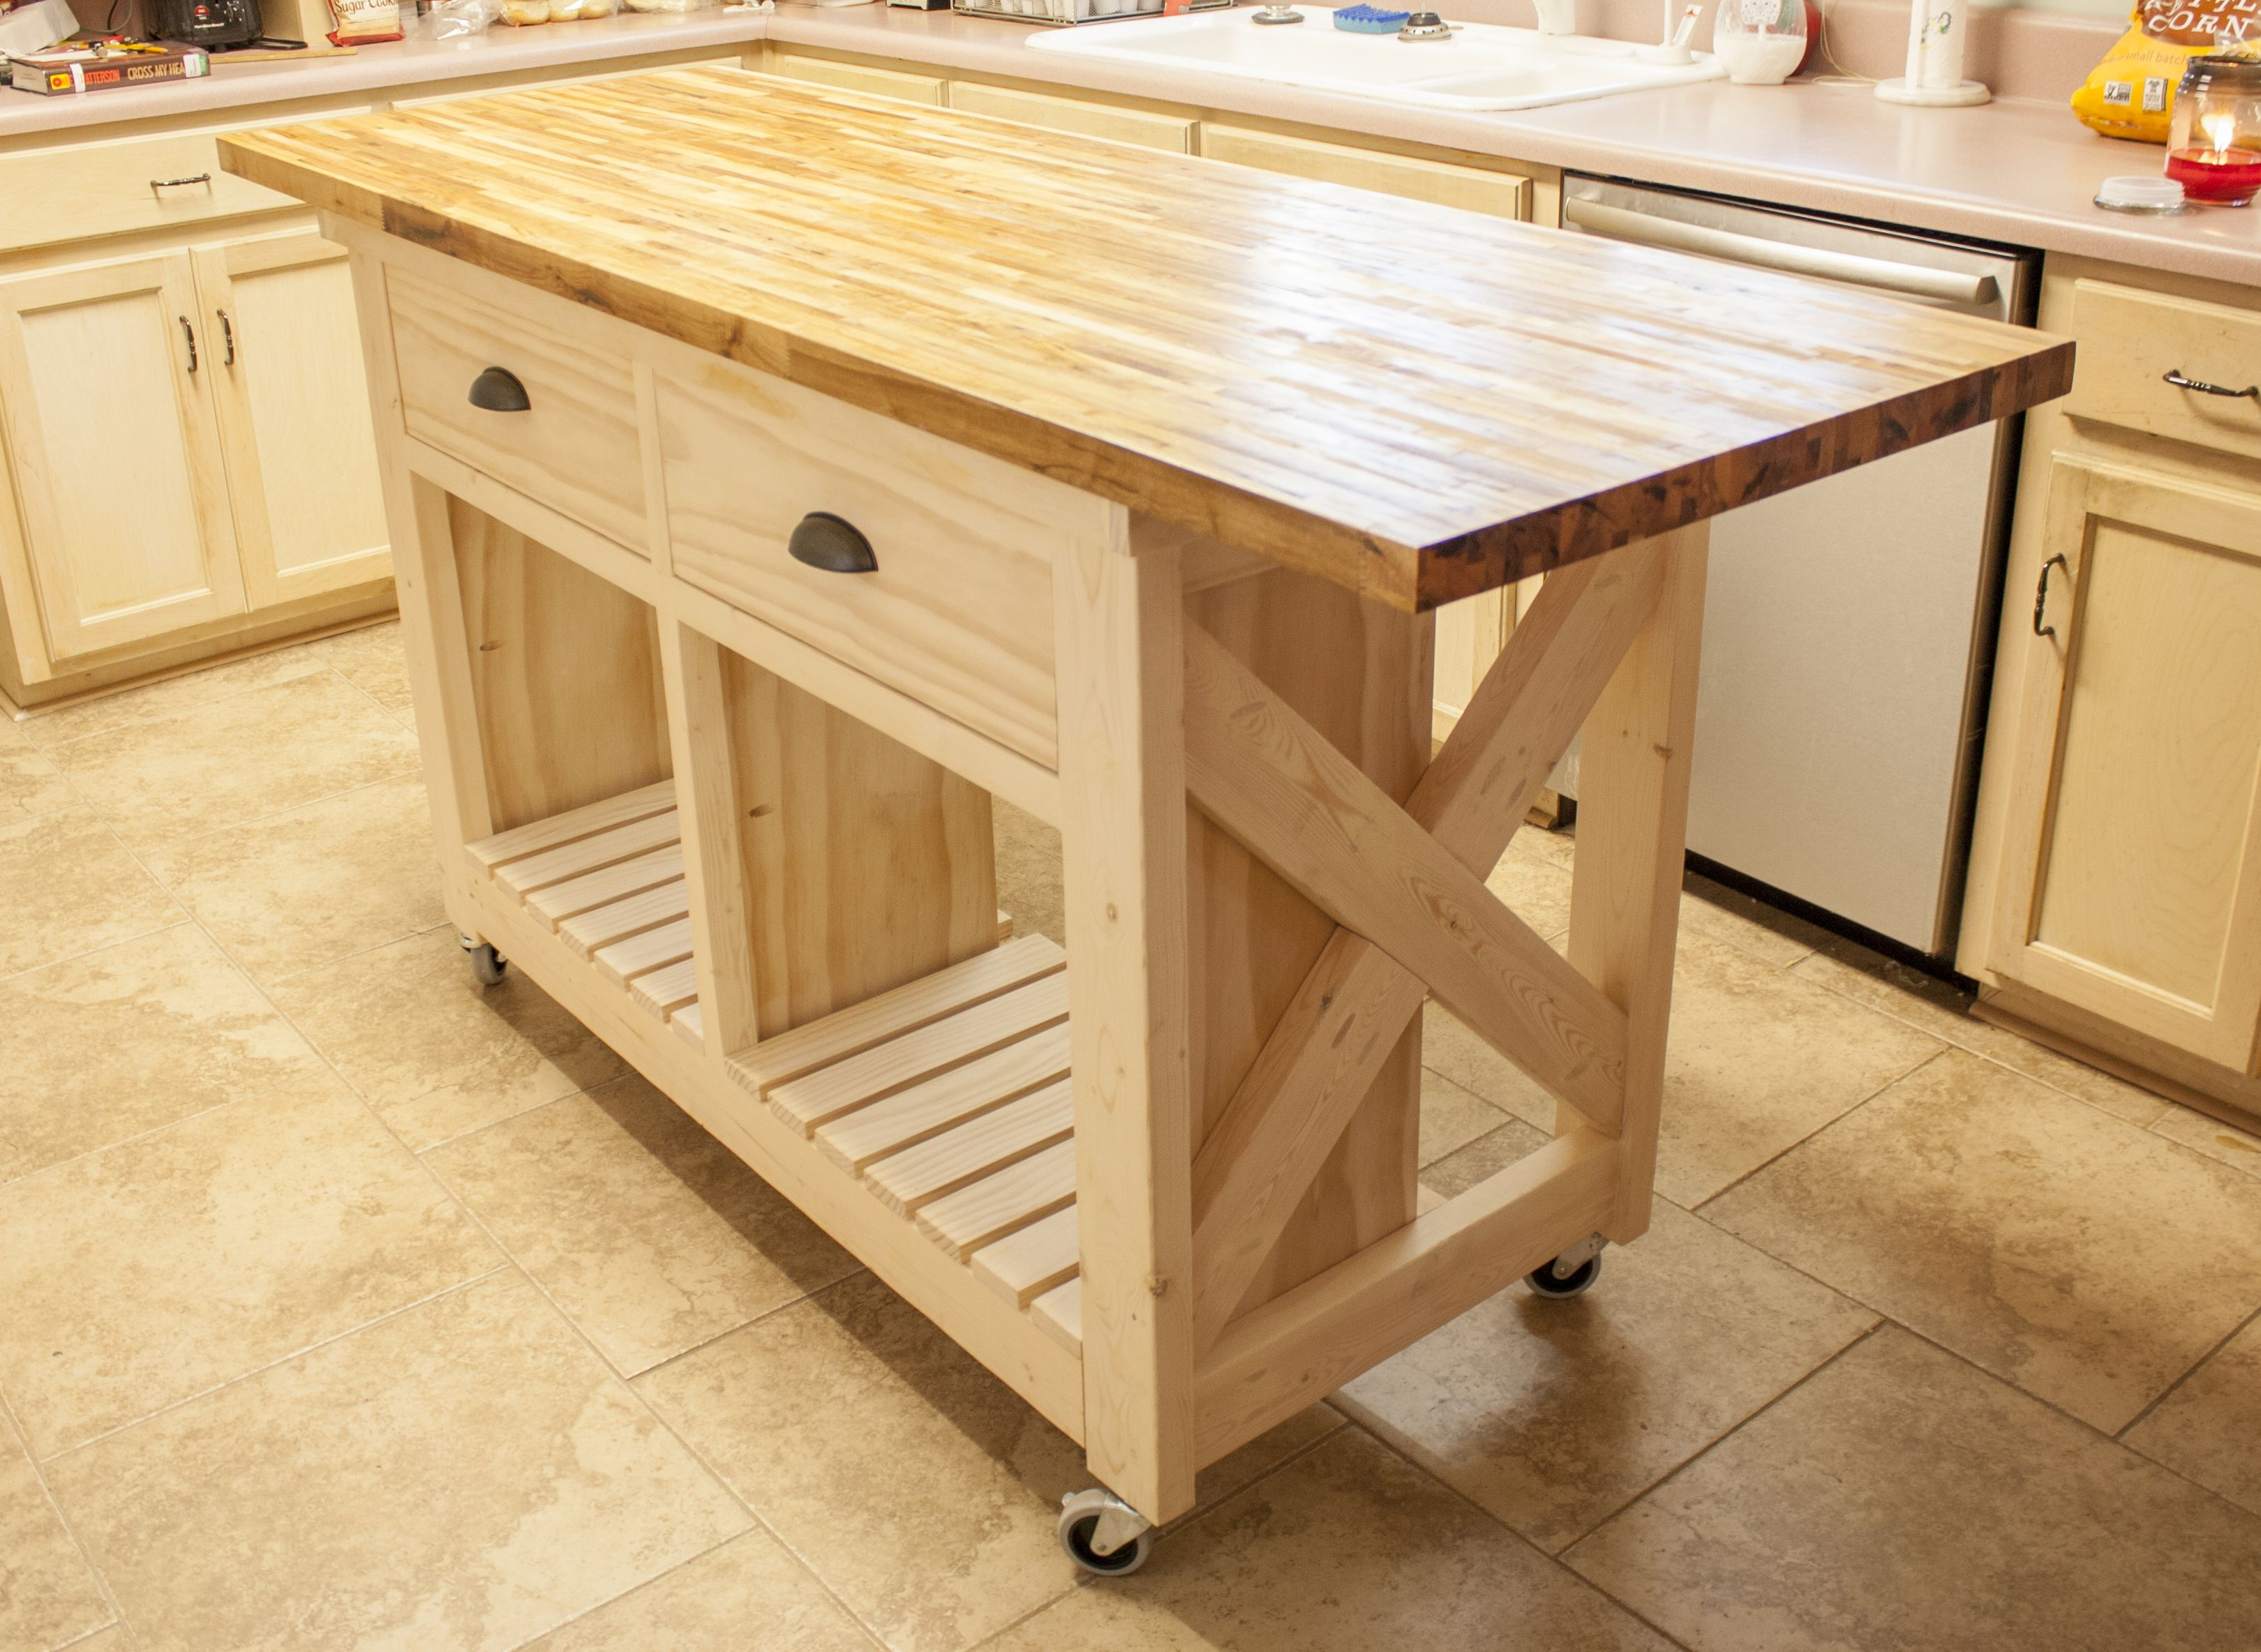 Gorgeous DIY Butcher Block Island | Kitchen Tutorials | Pinterest ...